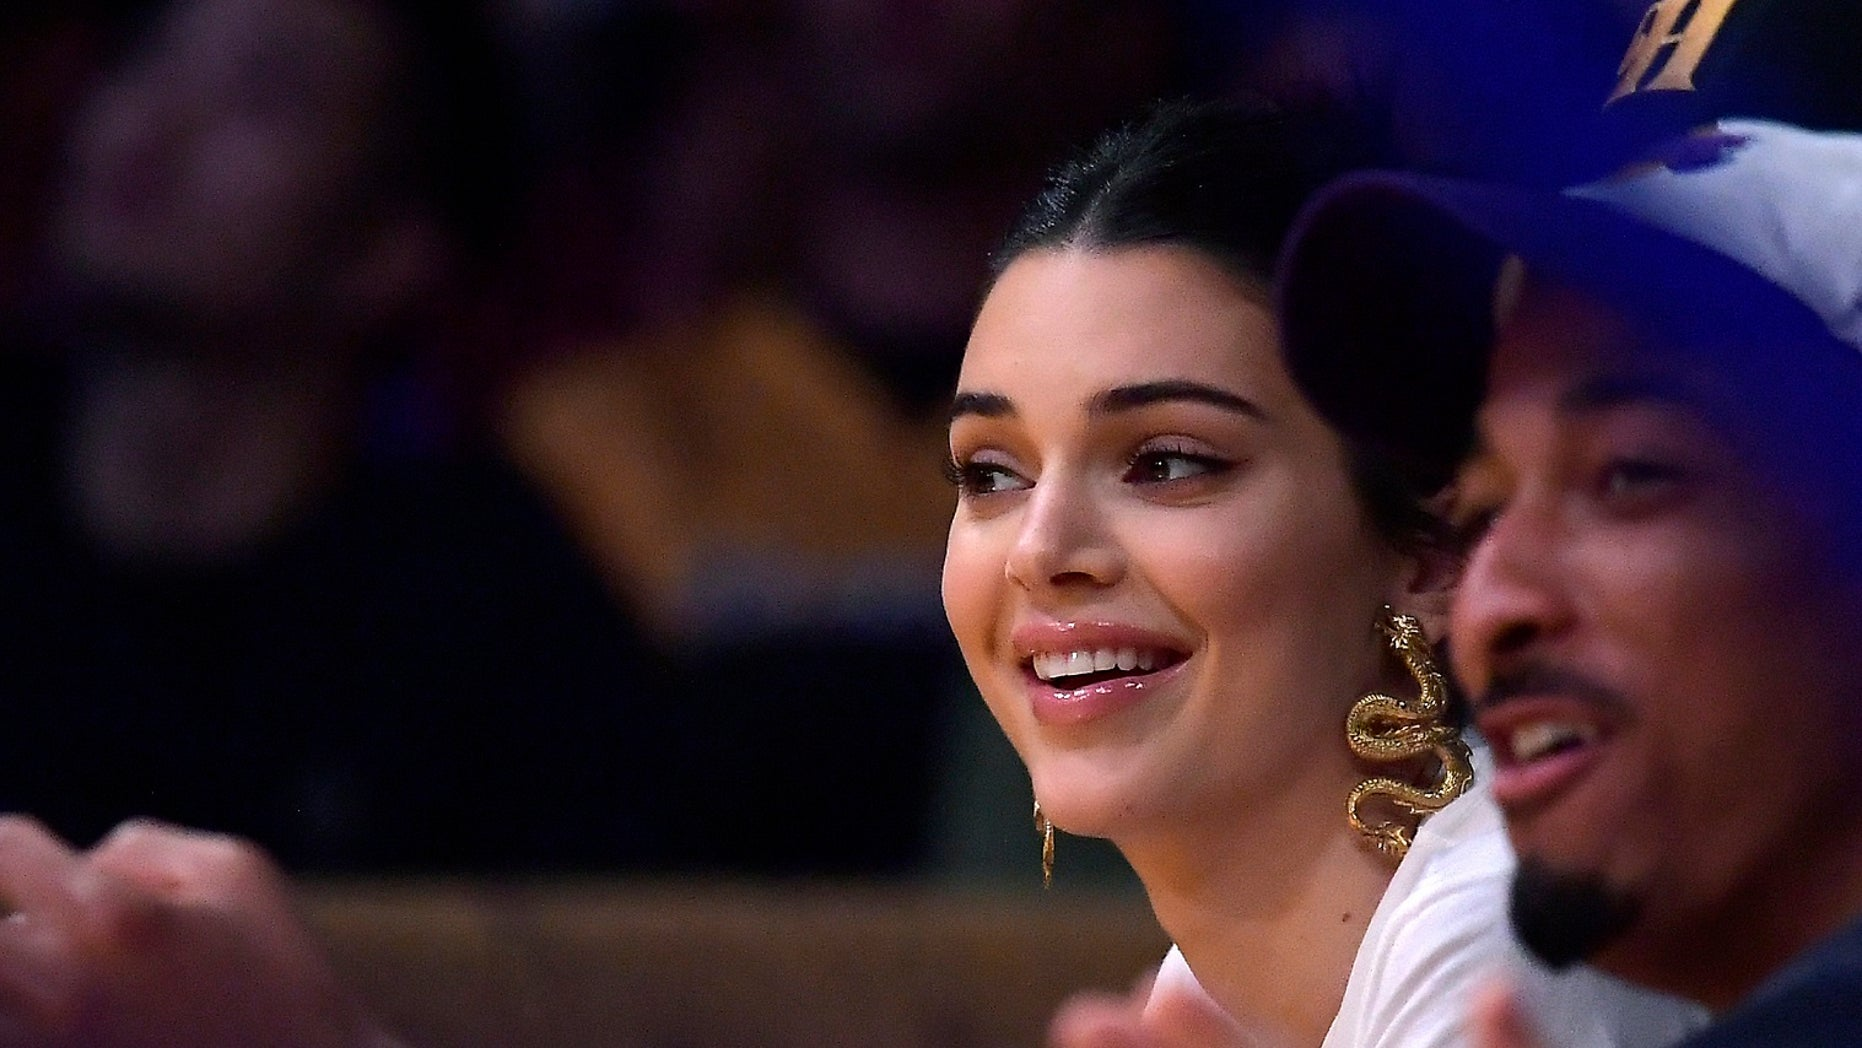 Kendall Jenner during the Lakers v. 76ers game on Tuesday, Jan. 29, 2019.